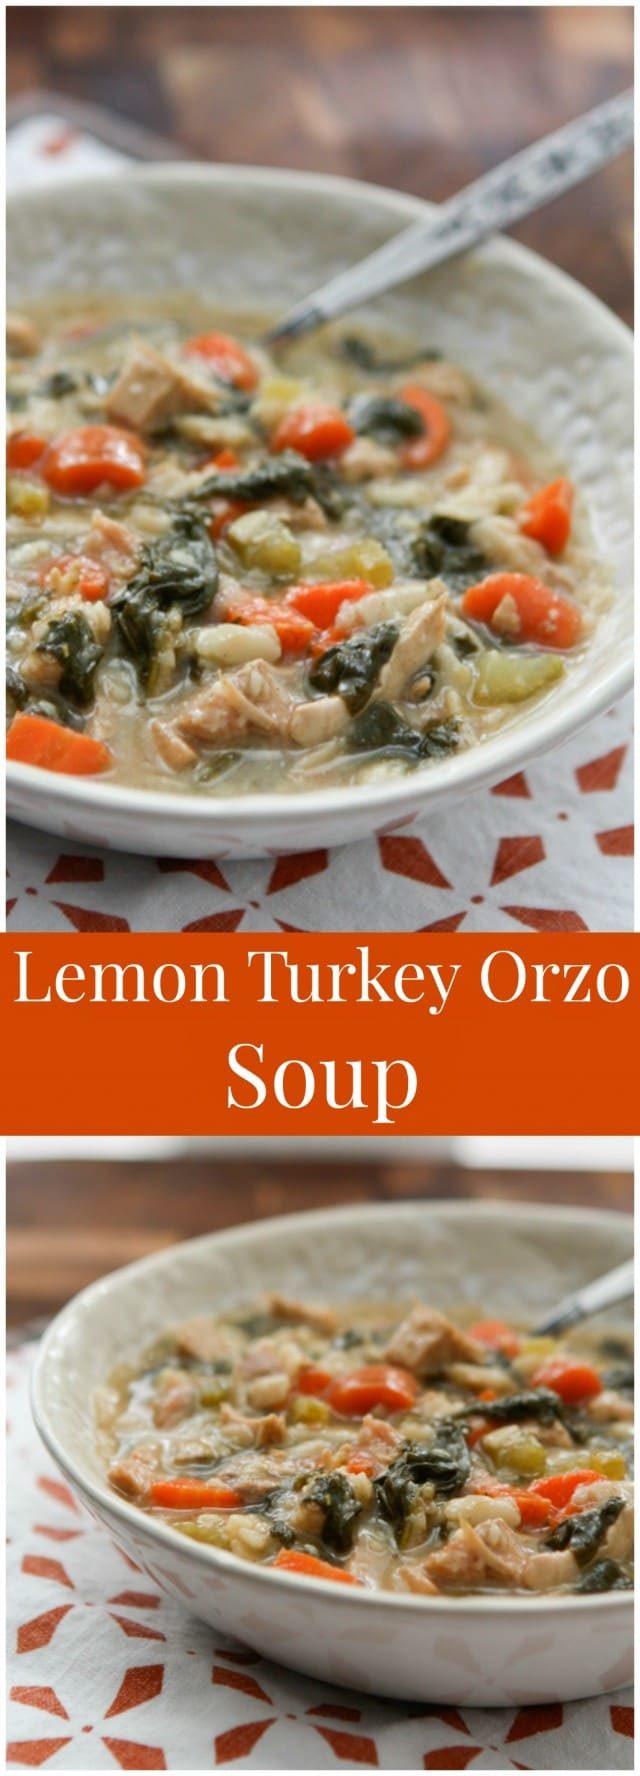 Use leftover cooked turkey (or rotisserie chicken) in this hearty and healthy Lemon Turkey Orzo Soup. Perfect to warm you up during the winter!